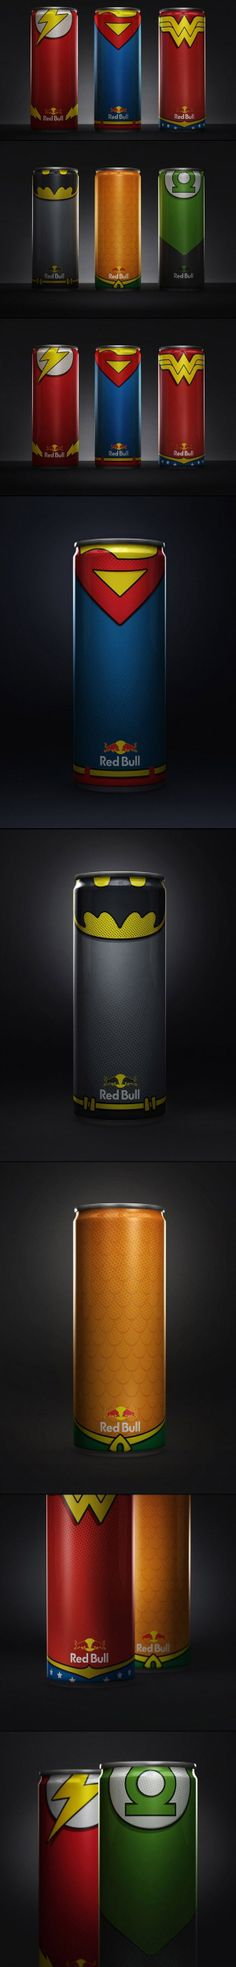 REDBULL SUPERHEROES by Diego Fonseca